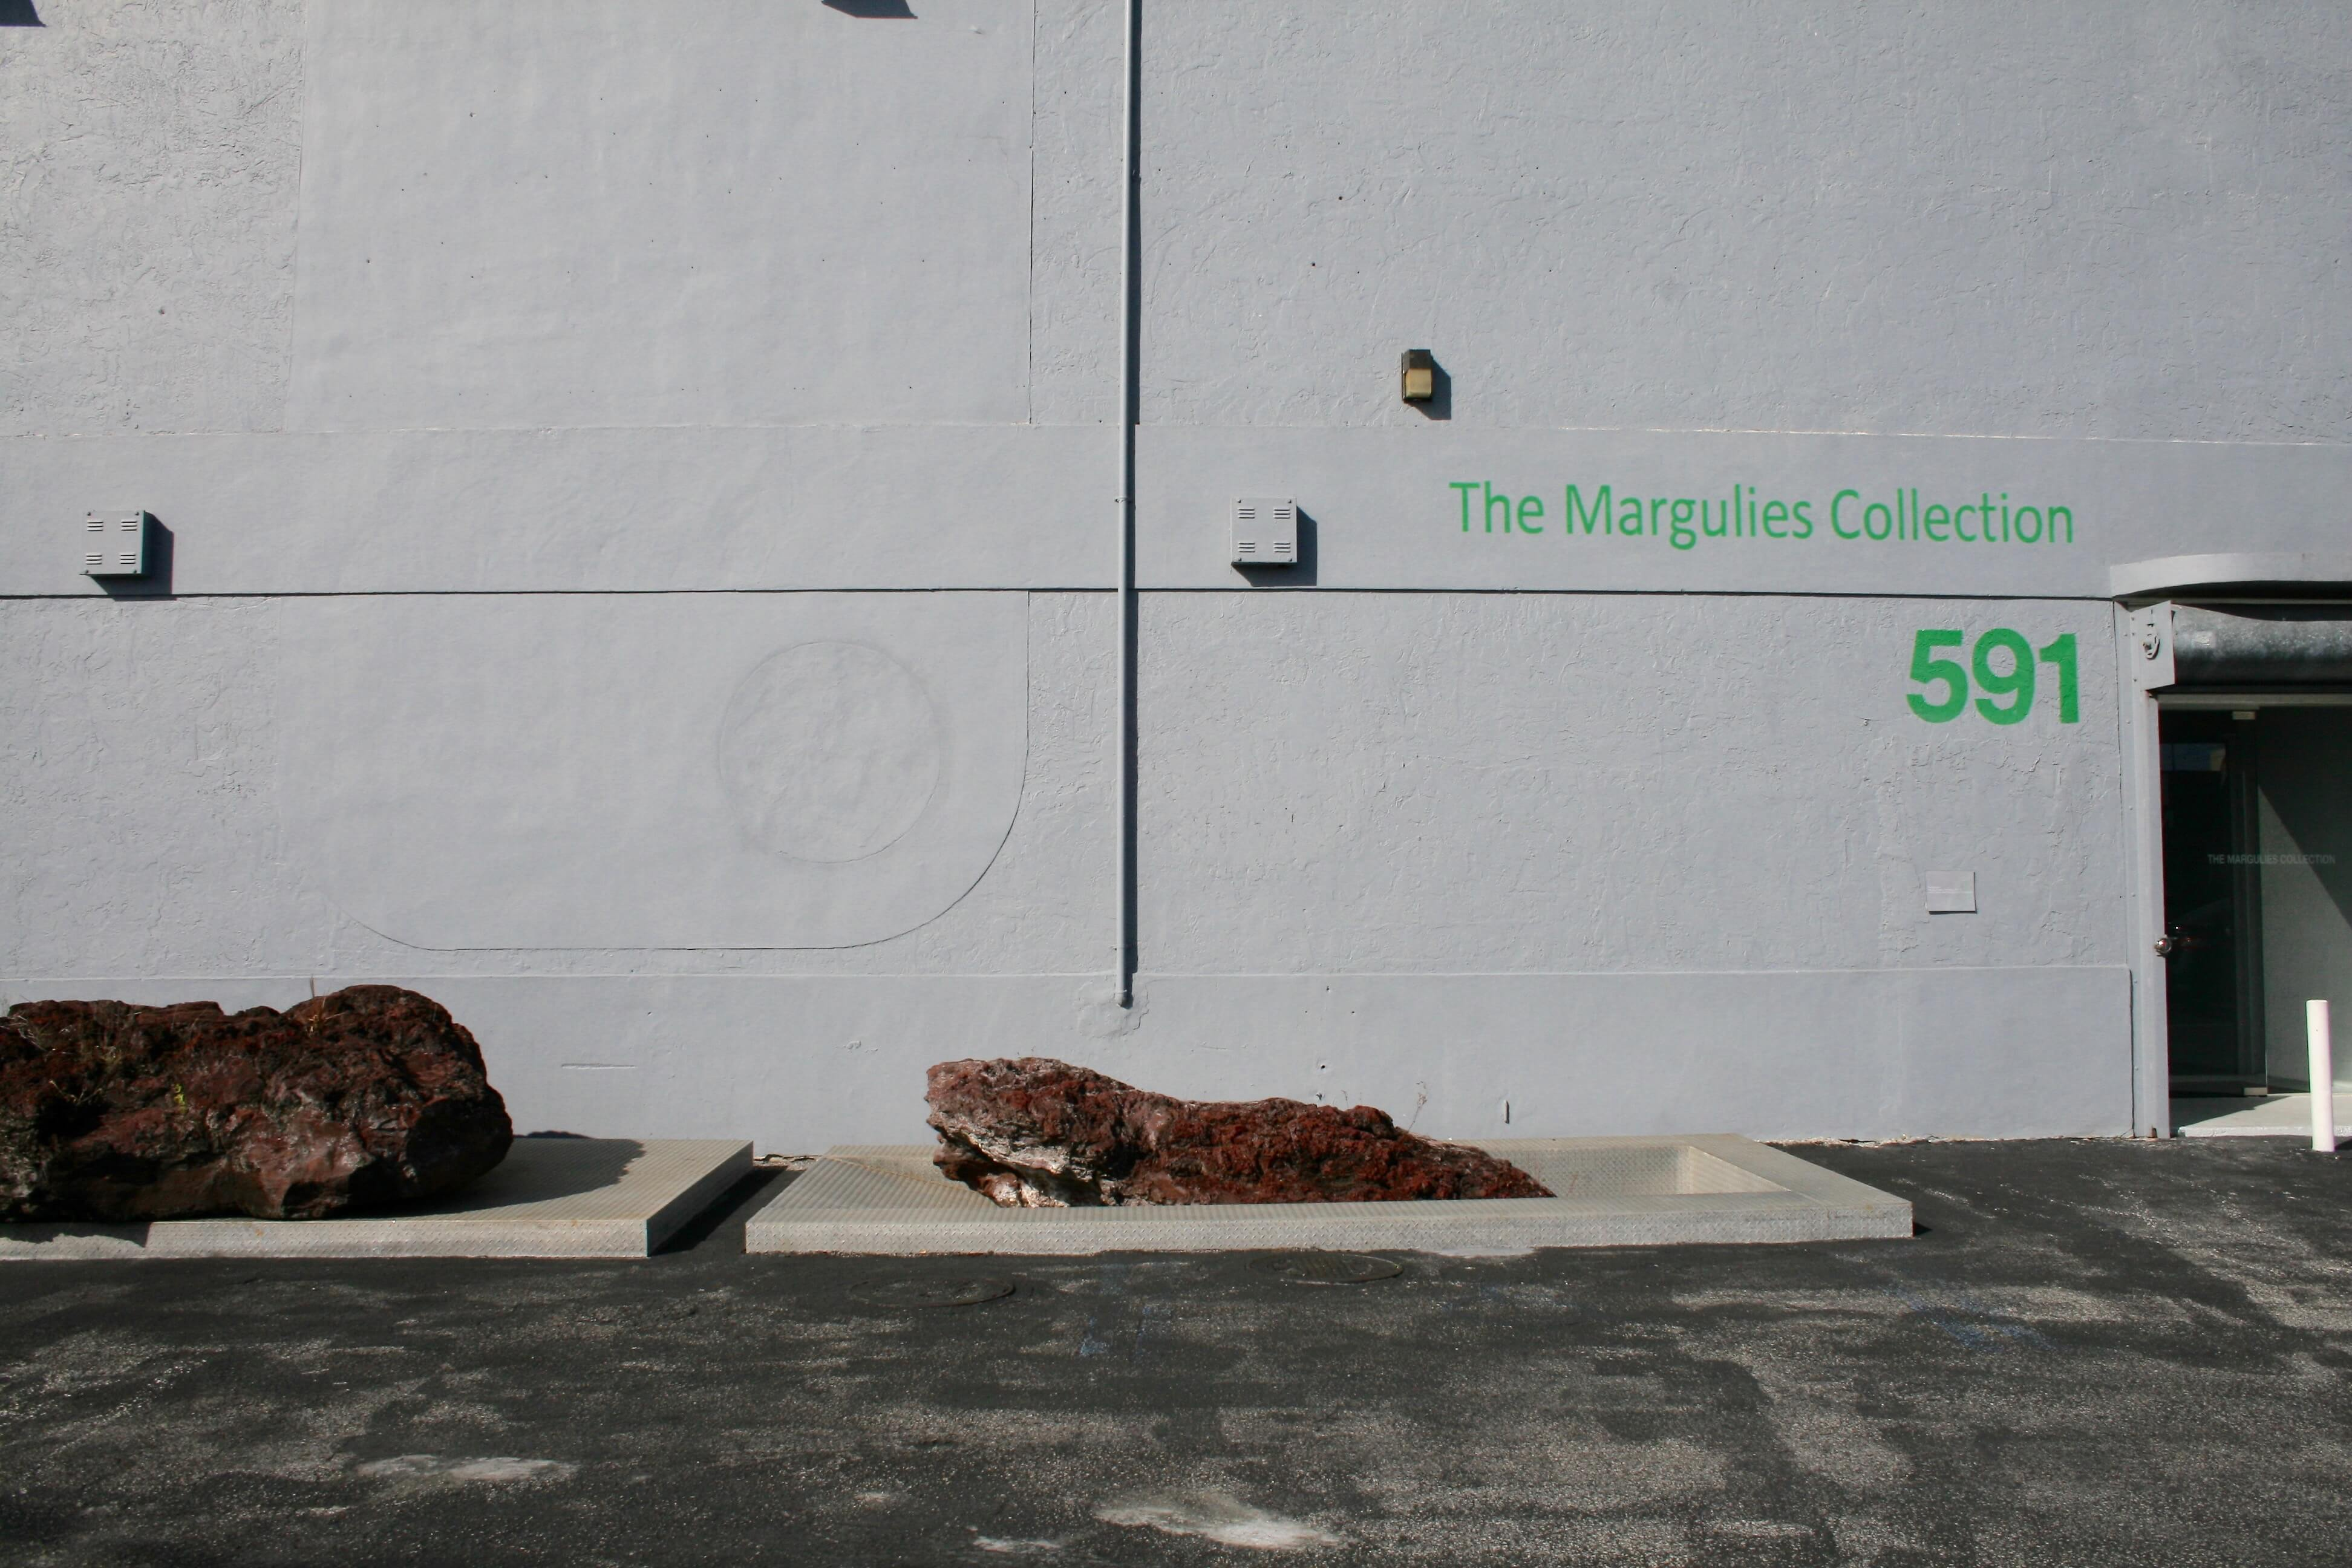 The Margulies Collection